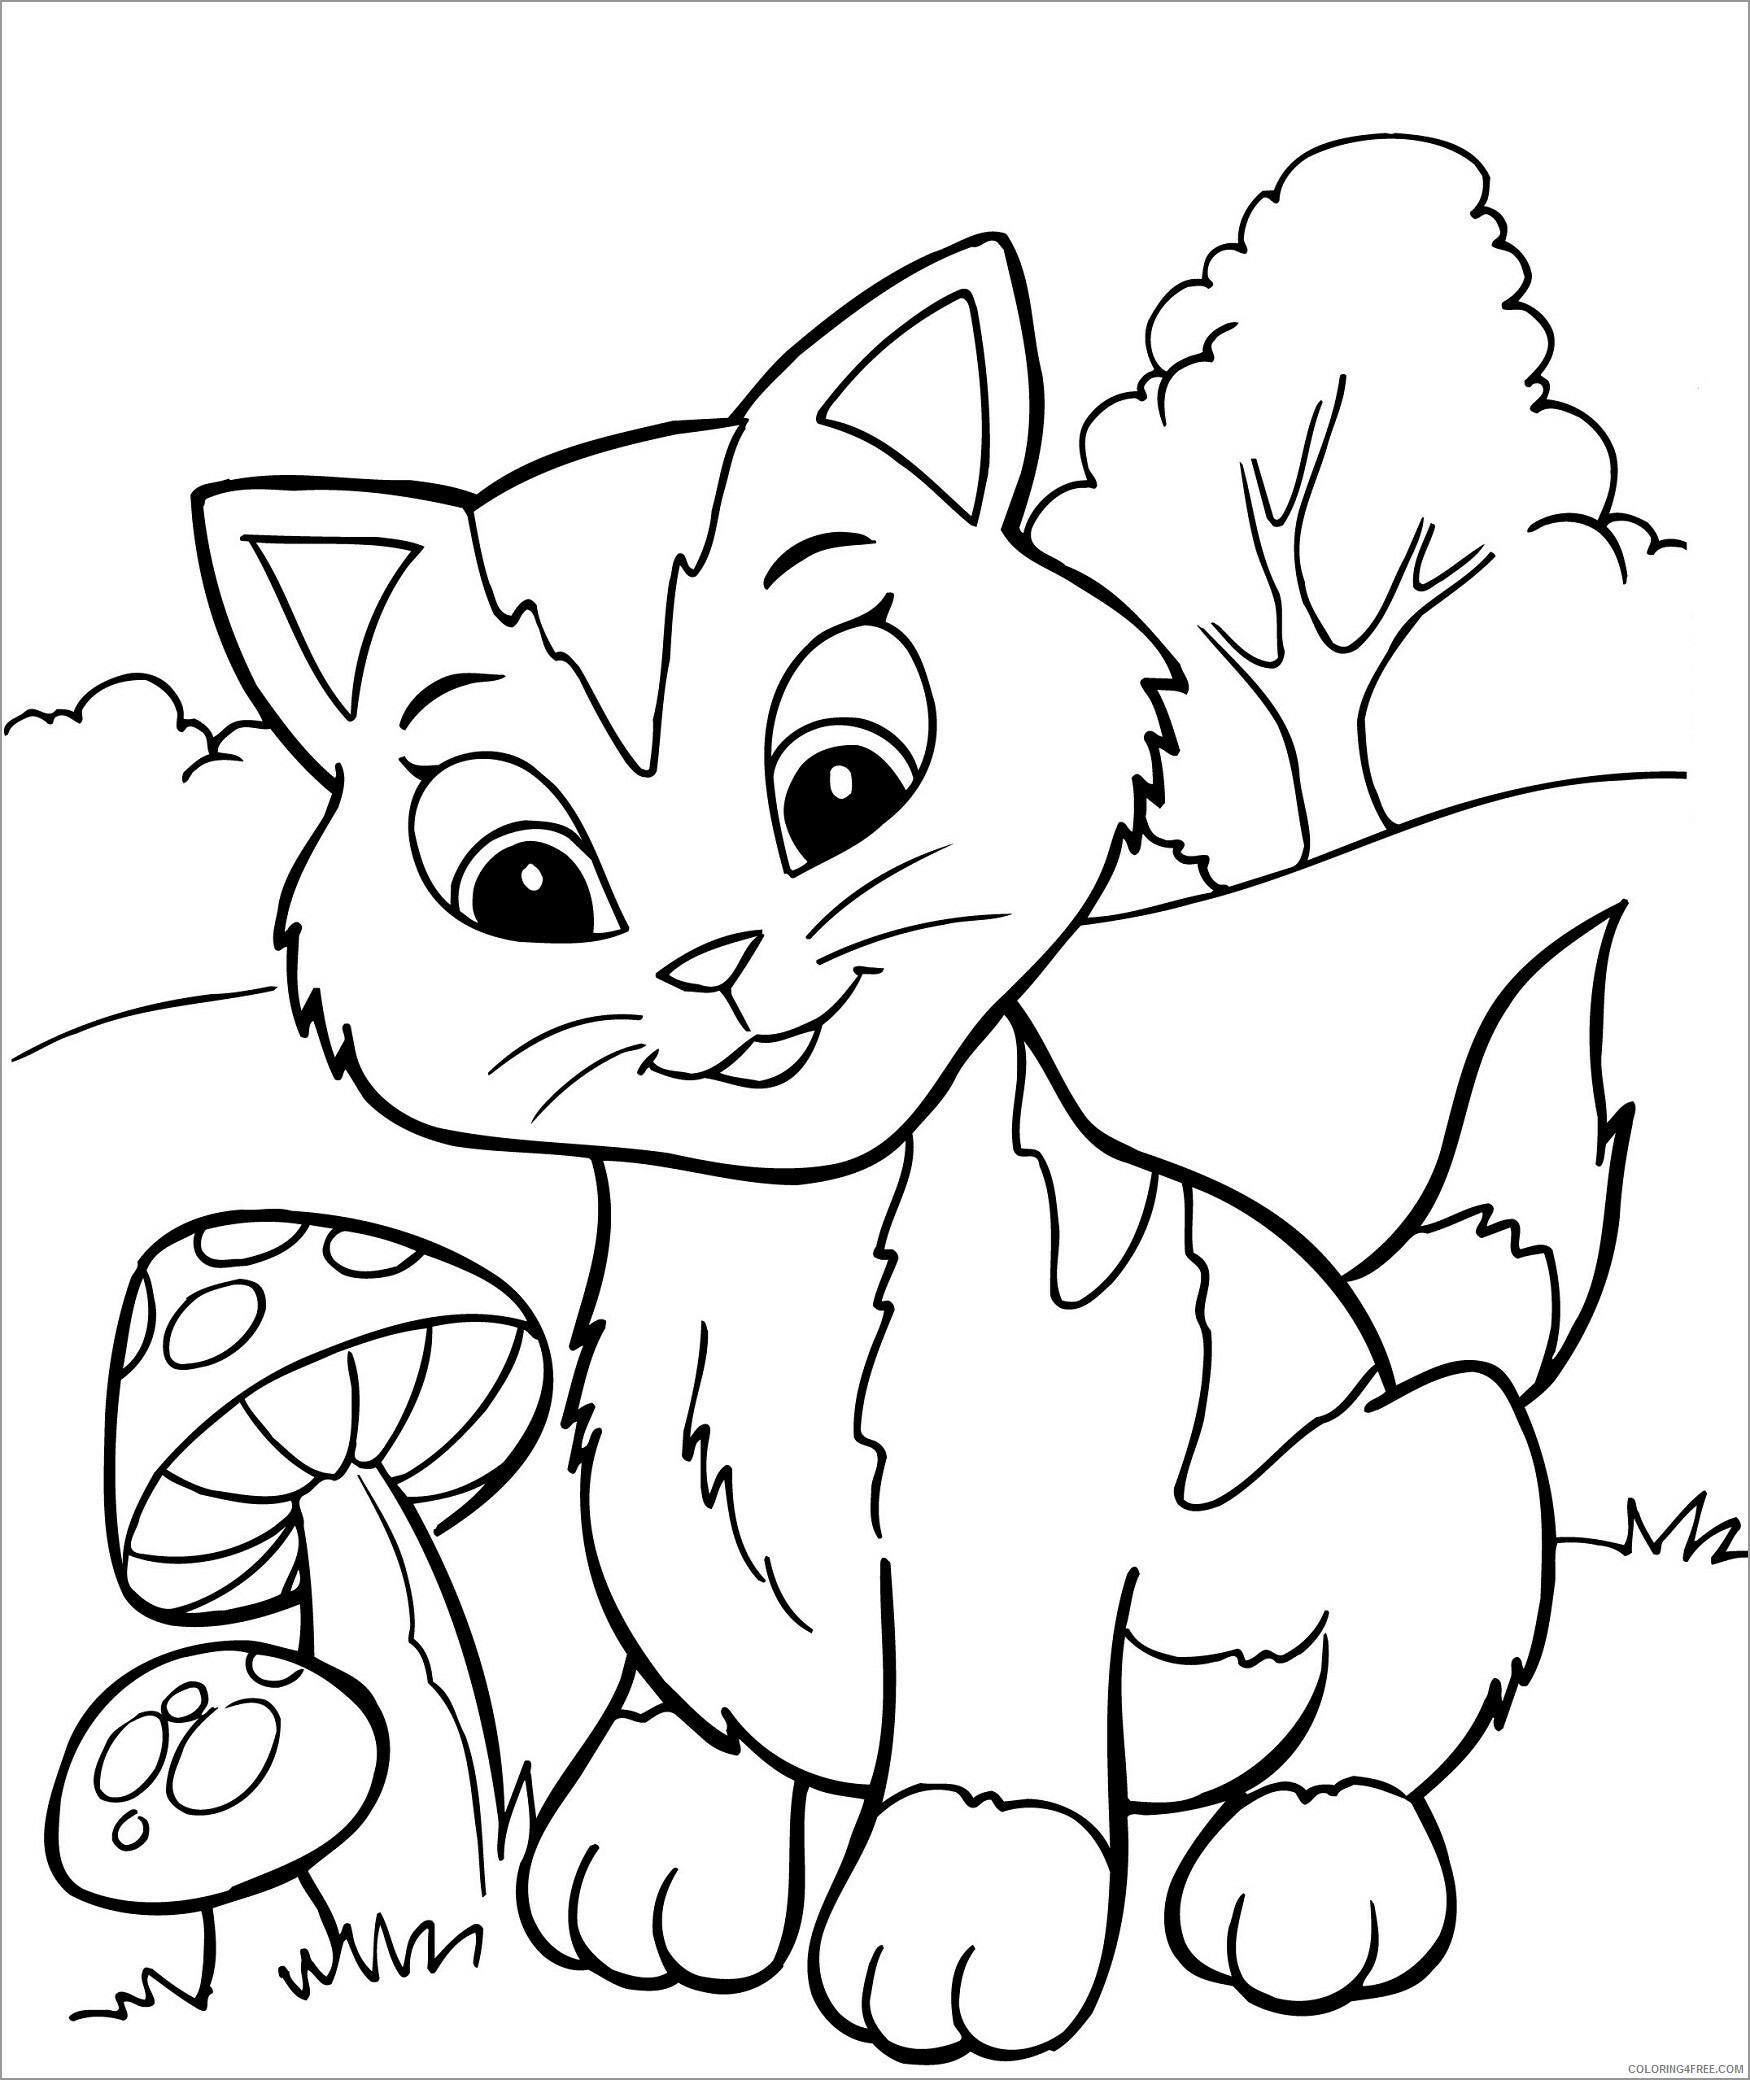 Kitten Coloring Pages Animal Printable Sheets cute kitten to print 2021 2974 Coloring4free